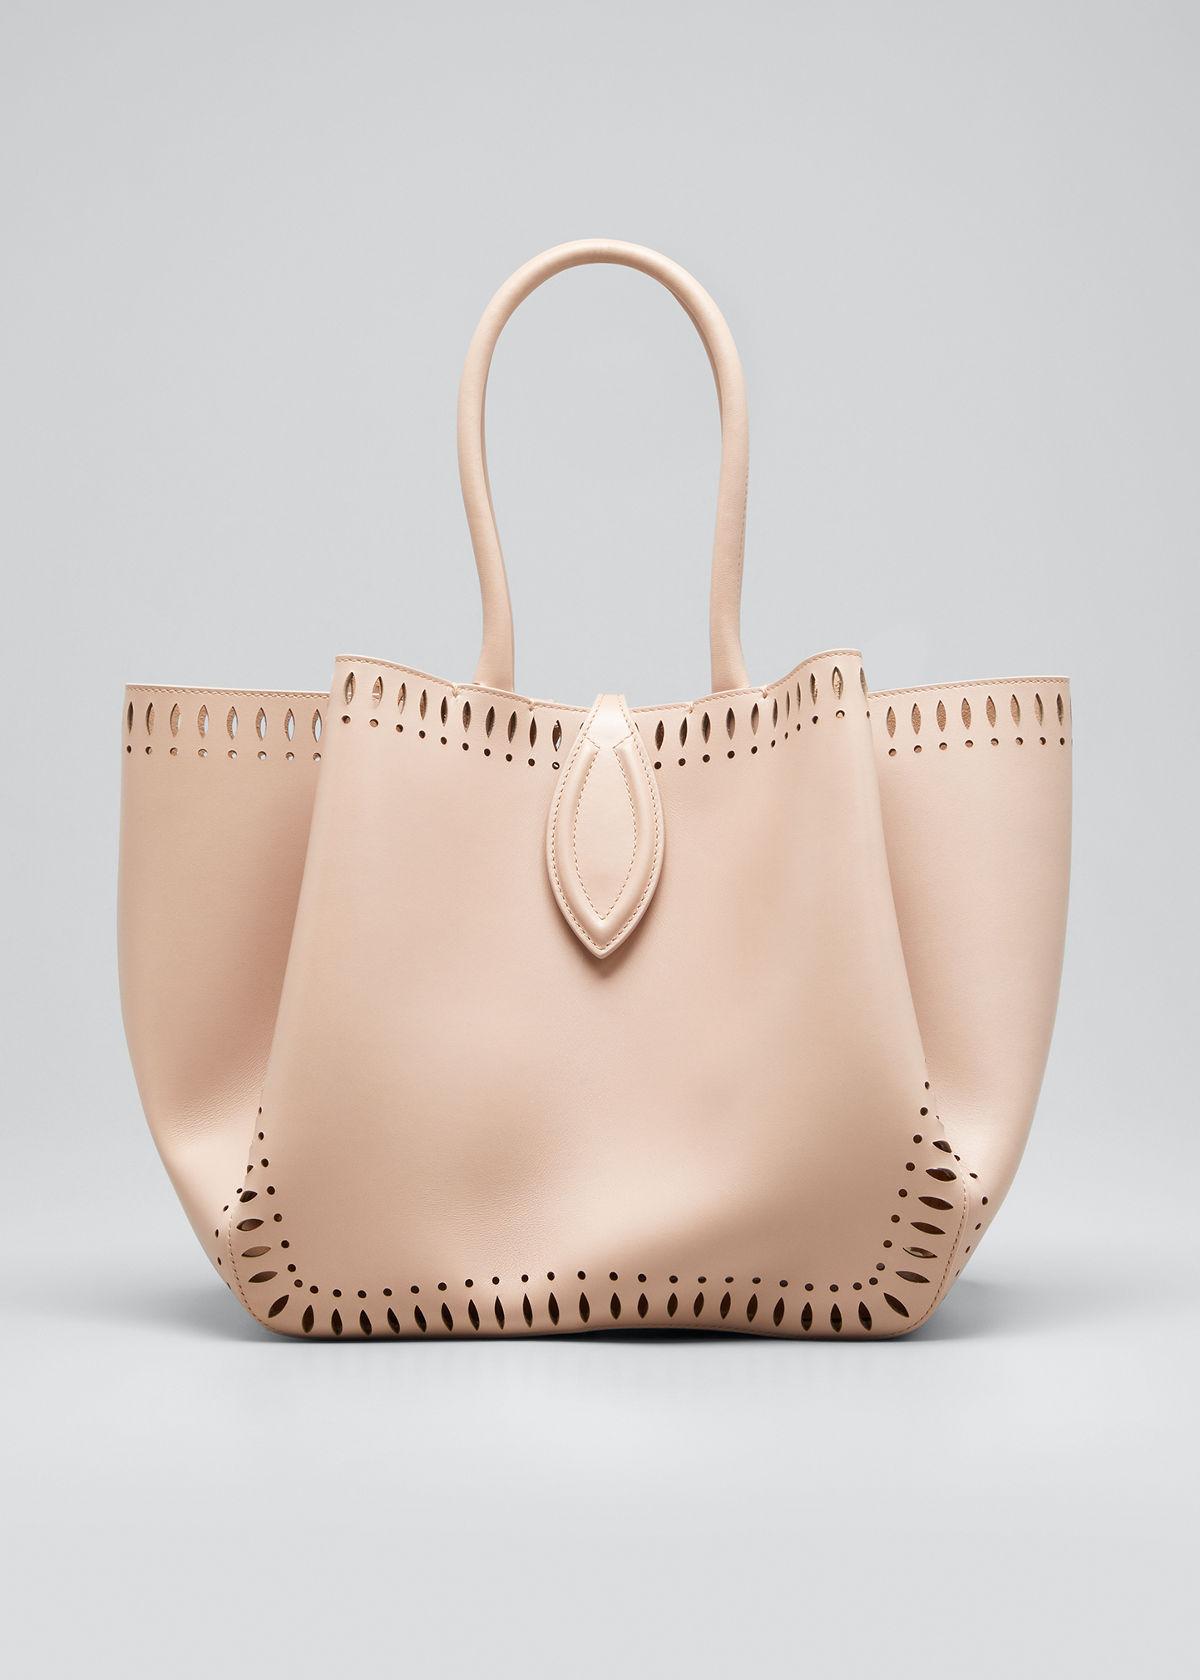 Alaïa ANGELE 25 CALF LEATHER TOP-HANDLE BAG